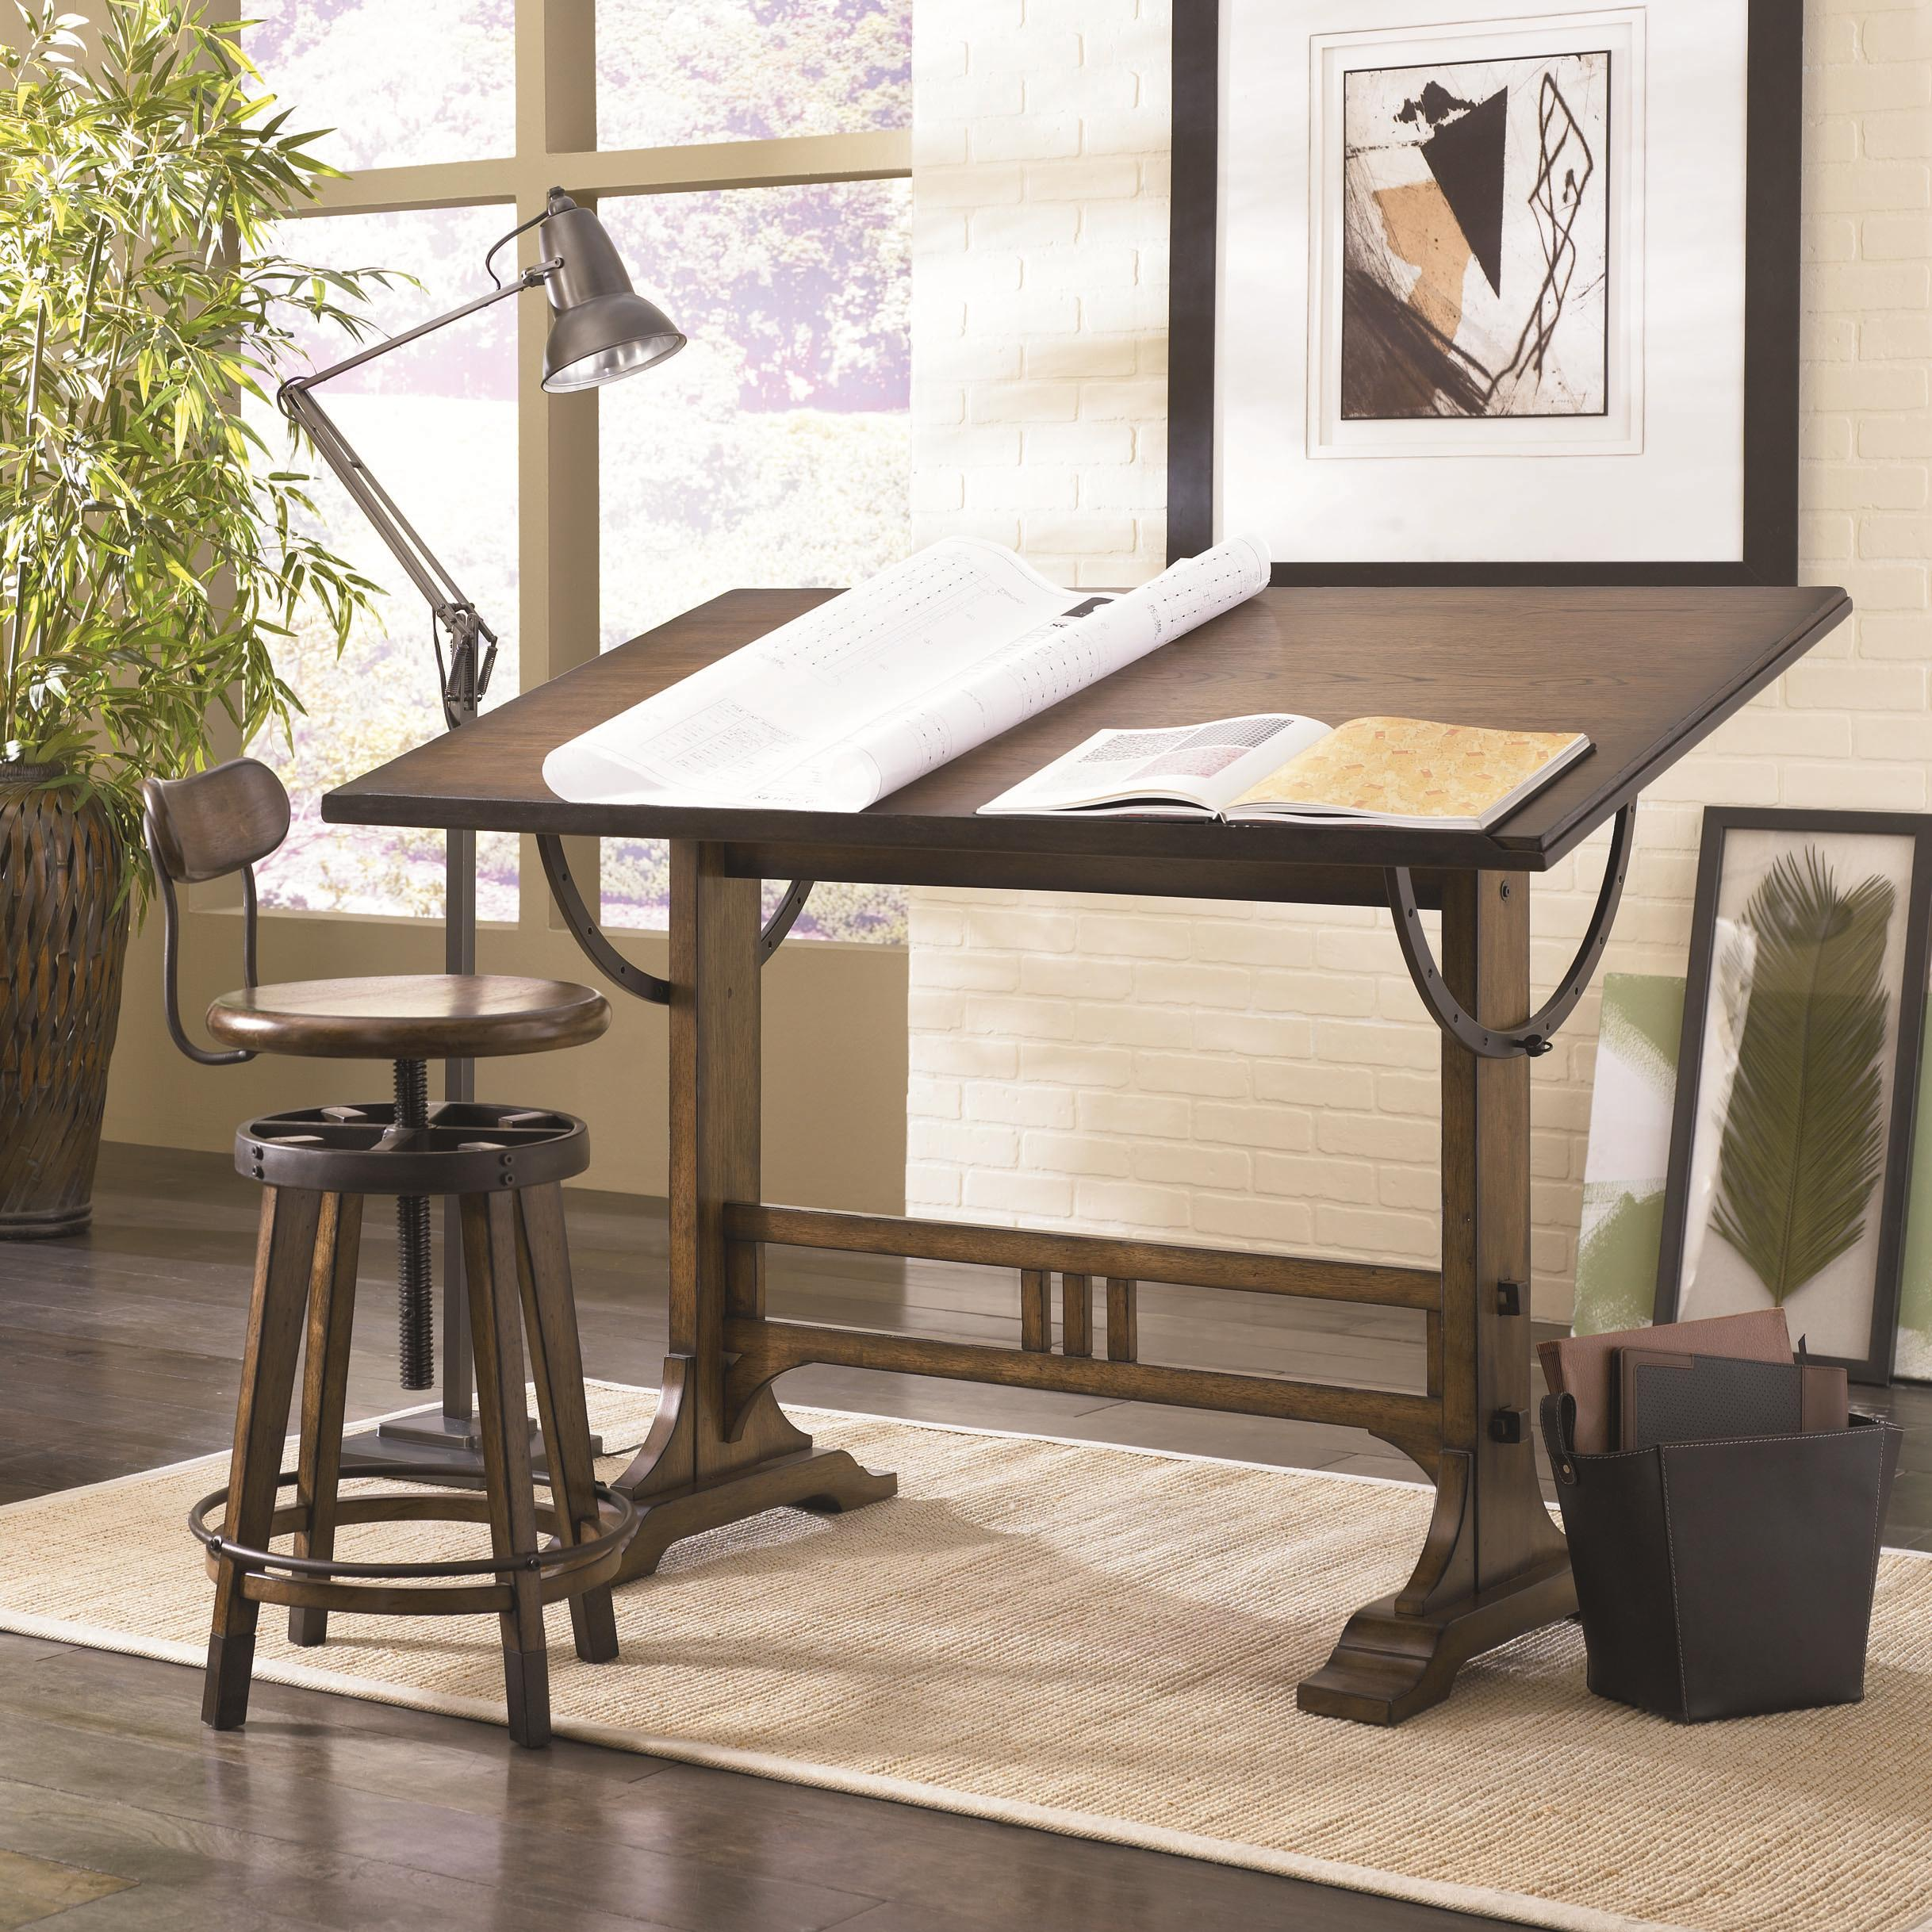 architect office supplies. mission weathered oak architect desk office supplies s